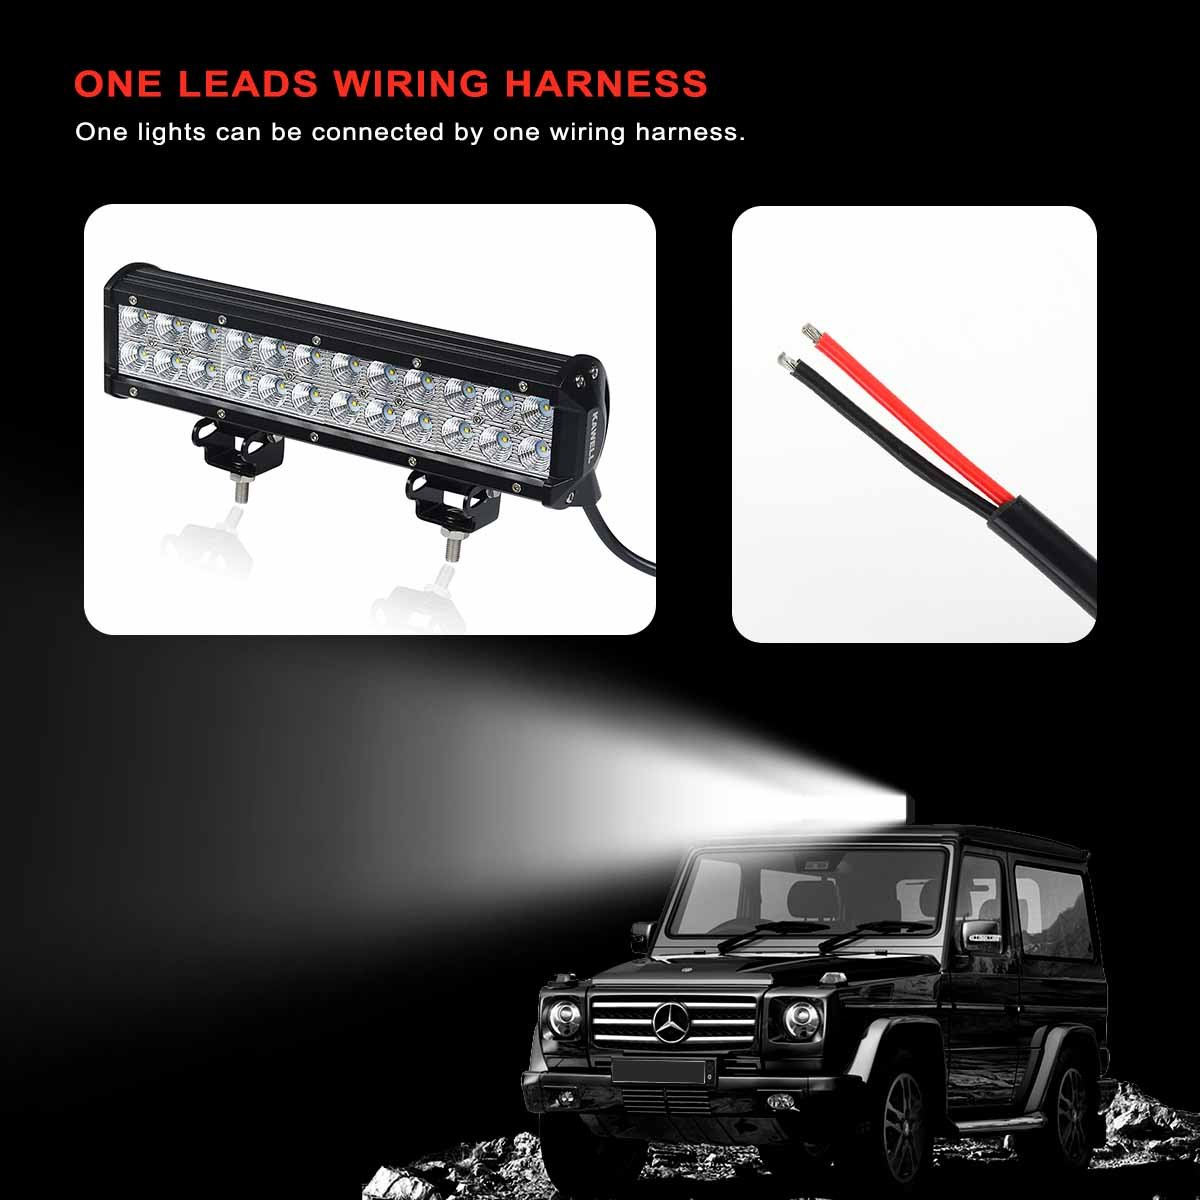 Kawell Led Wiring Harness Include Switch Kit Suppot 300w Off Road Lights On A Jeep Together With How To Wire Light Bar And Waterproof 1 Lead 9ft Automotive